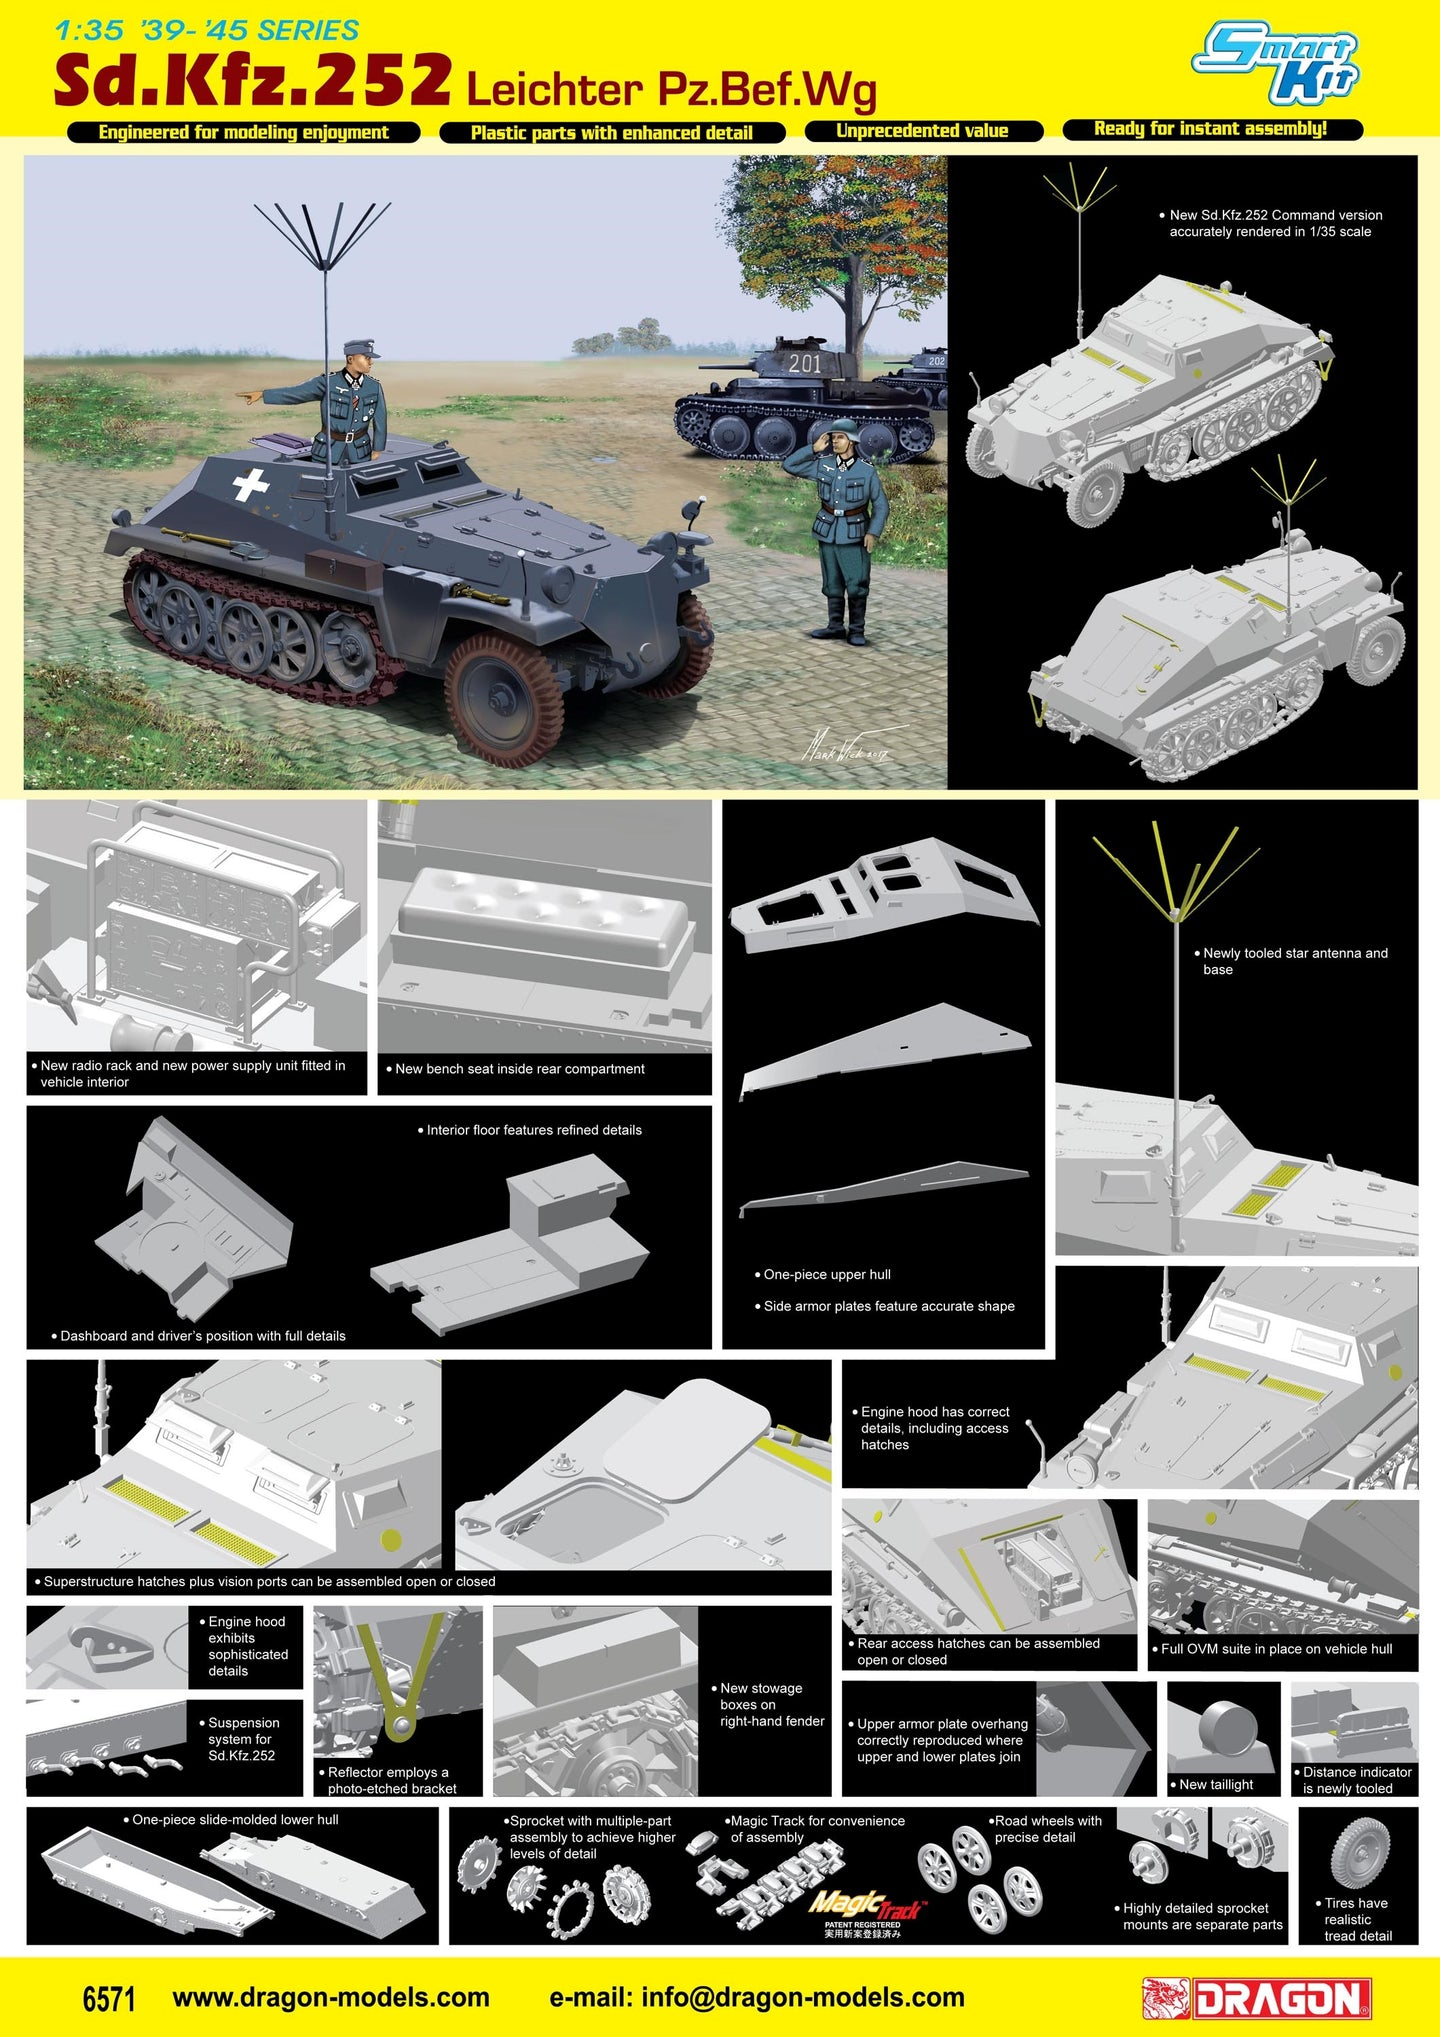 Dragon 1/35 German Sd.Kfz.252 Leichter Pz.Bef.Wg 6571